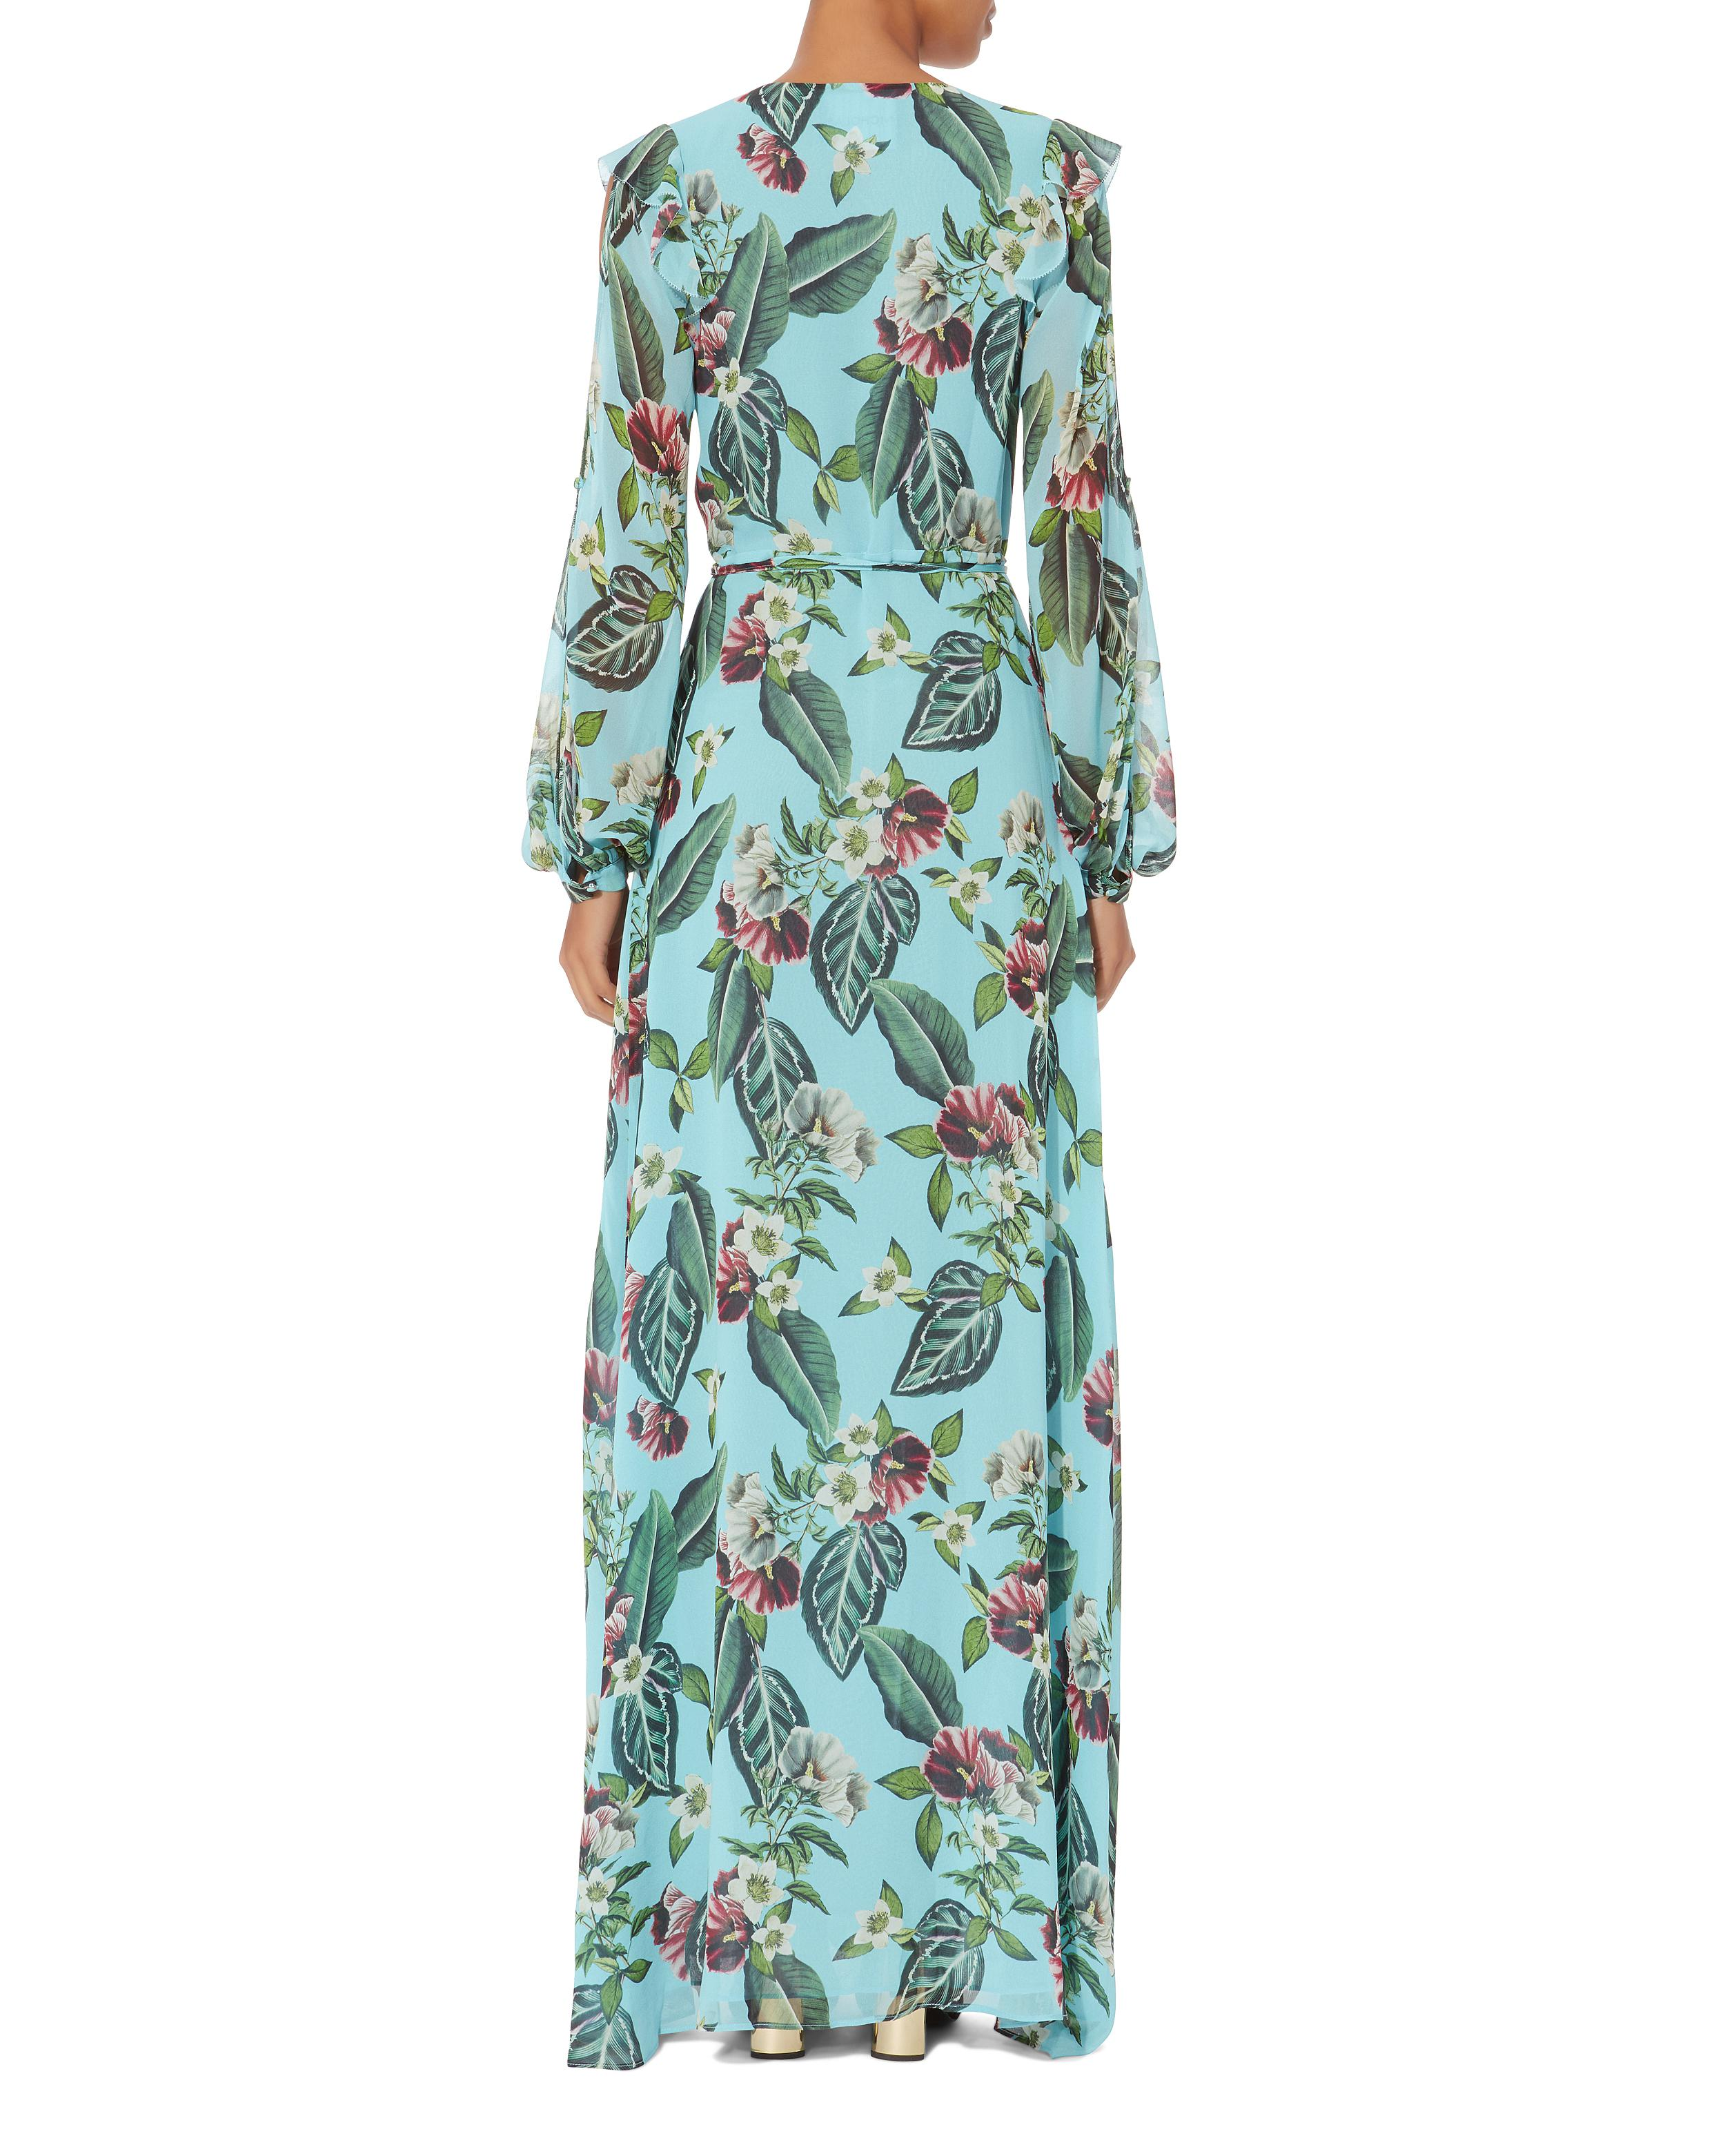 cda38db993 Nicholas Mayflower Maxi Dress in Blue - Lyst